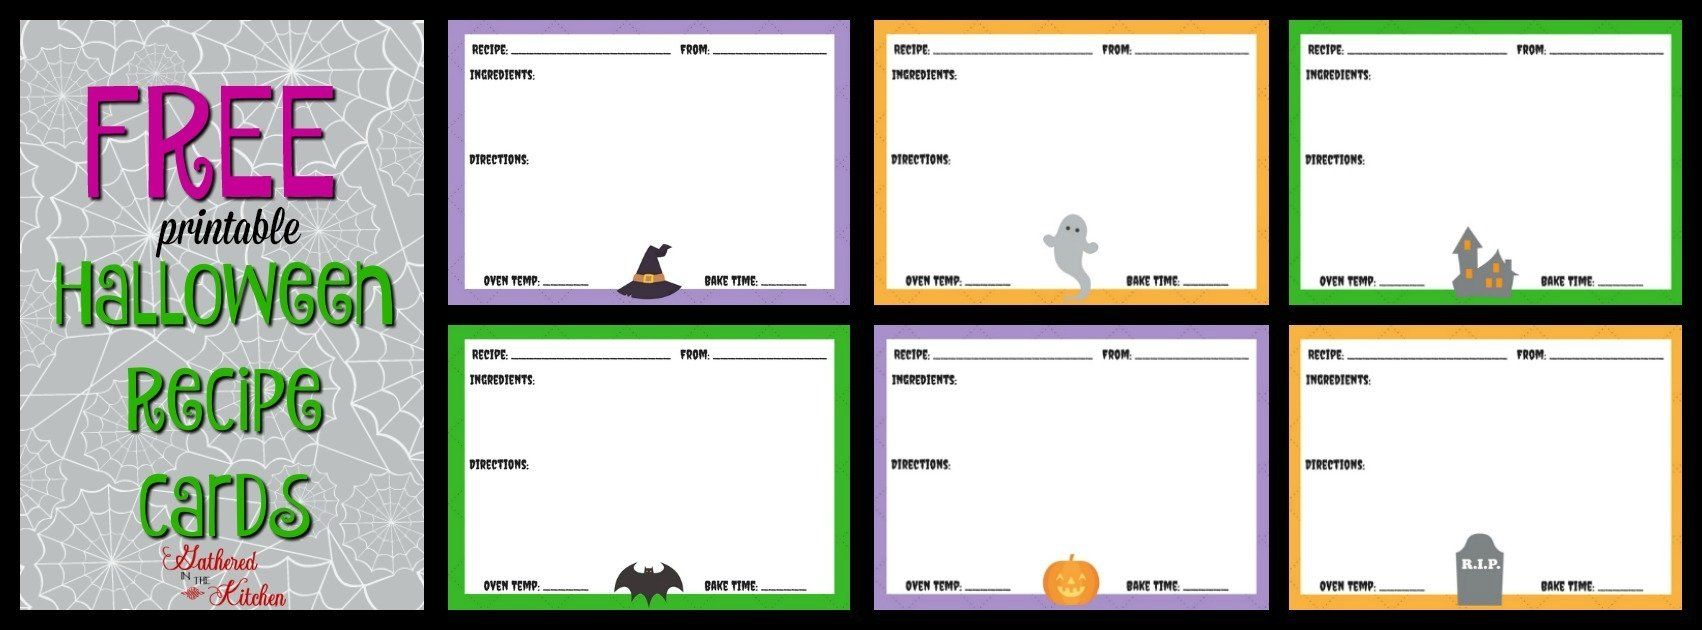 halloween-recipe-cards-collection-graphic-1